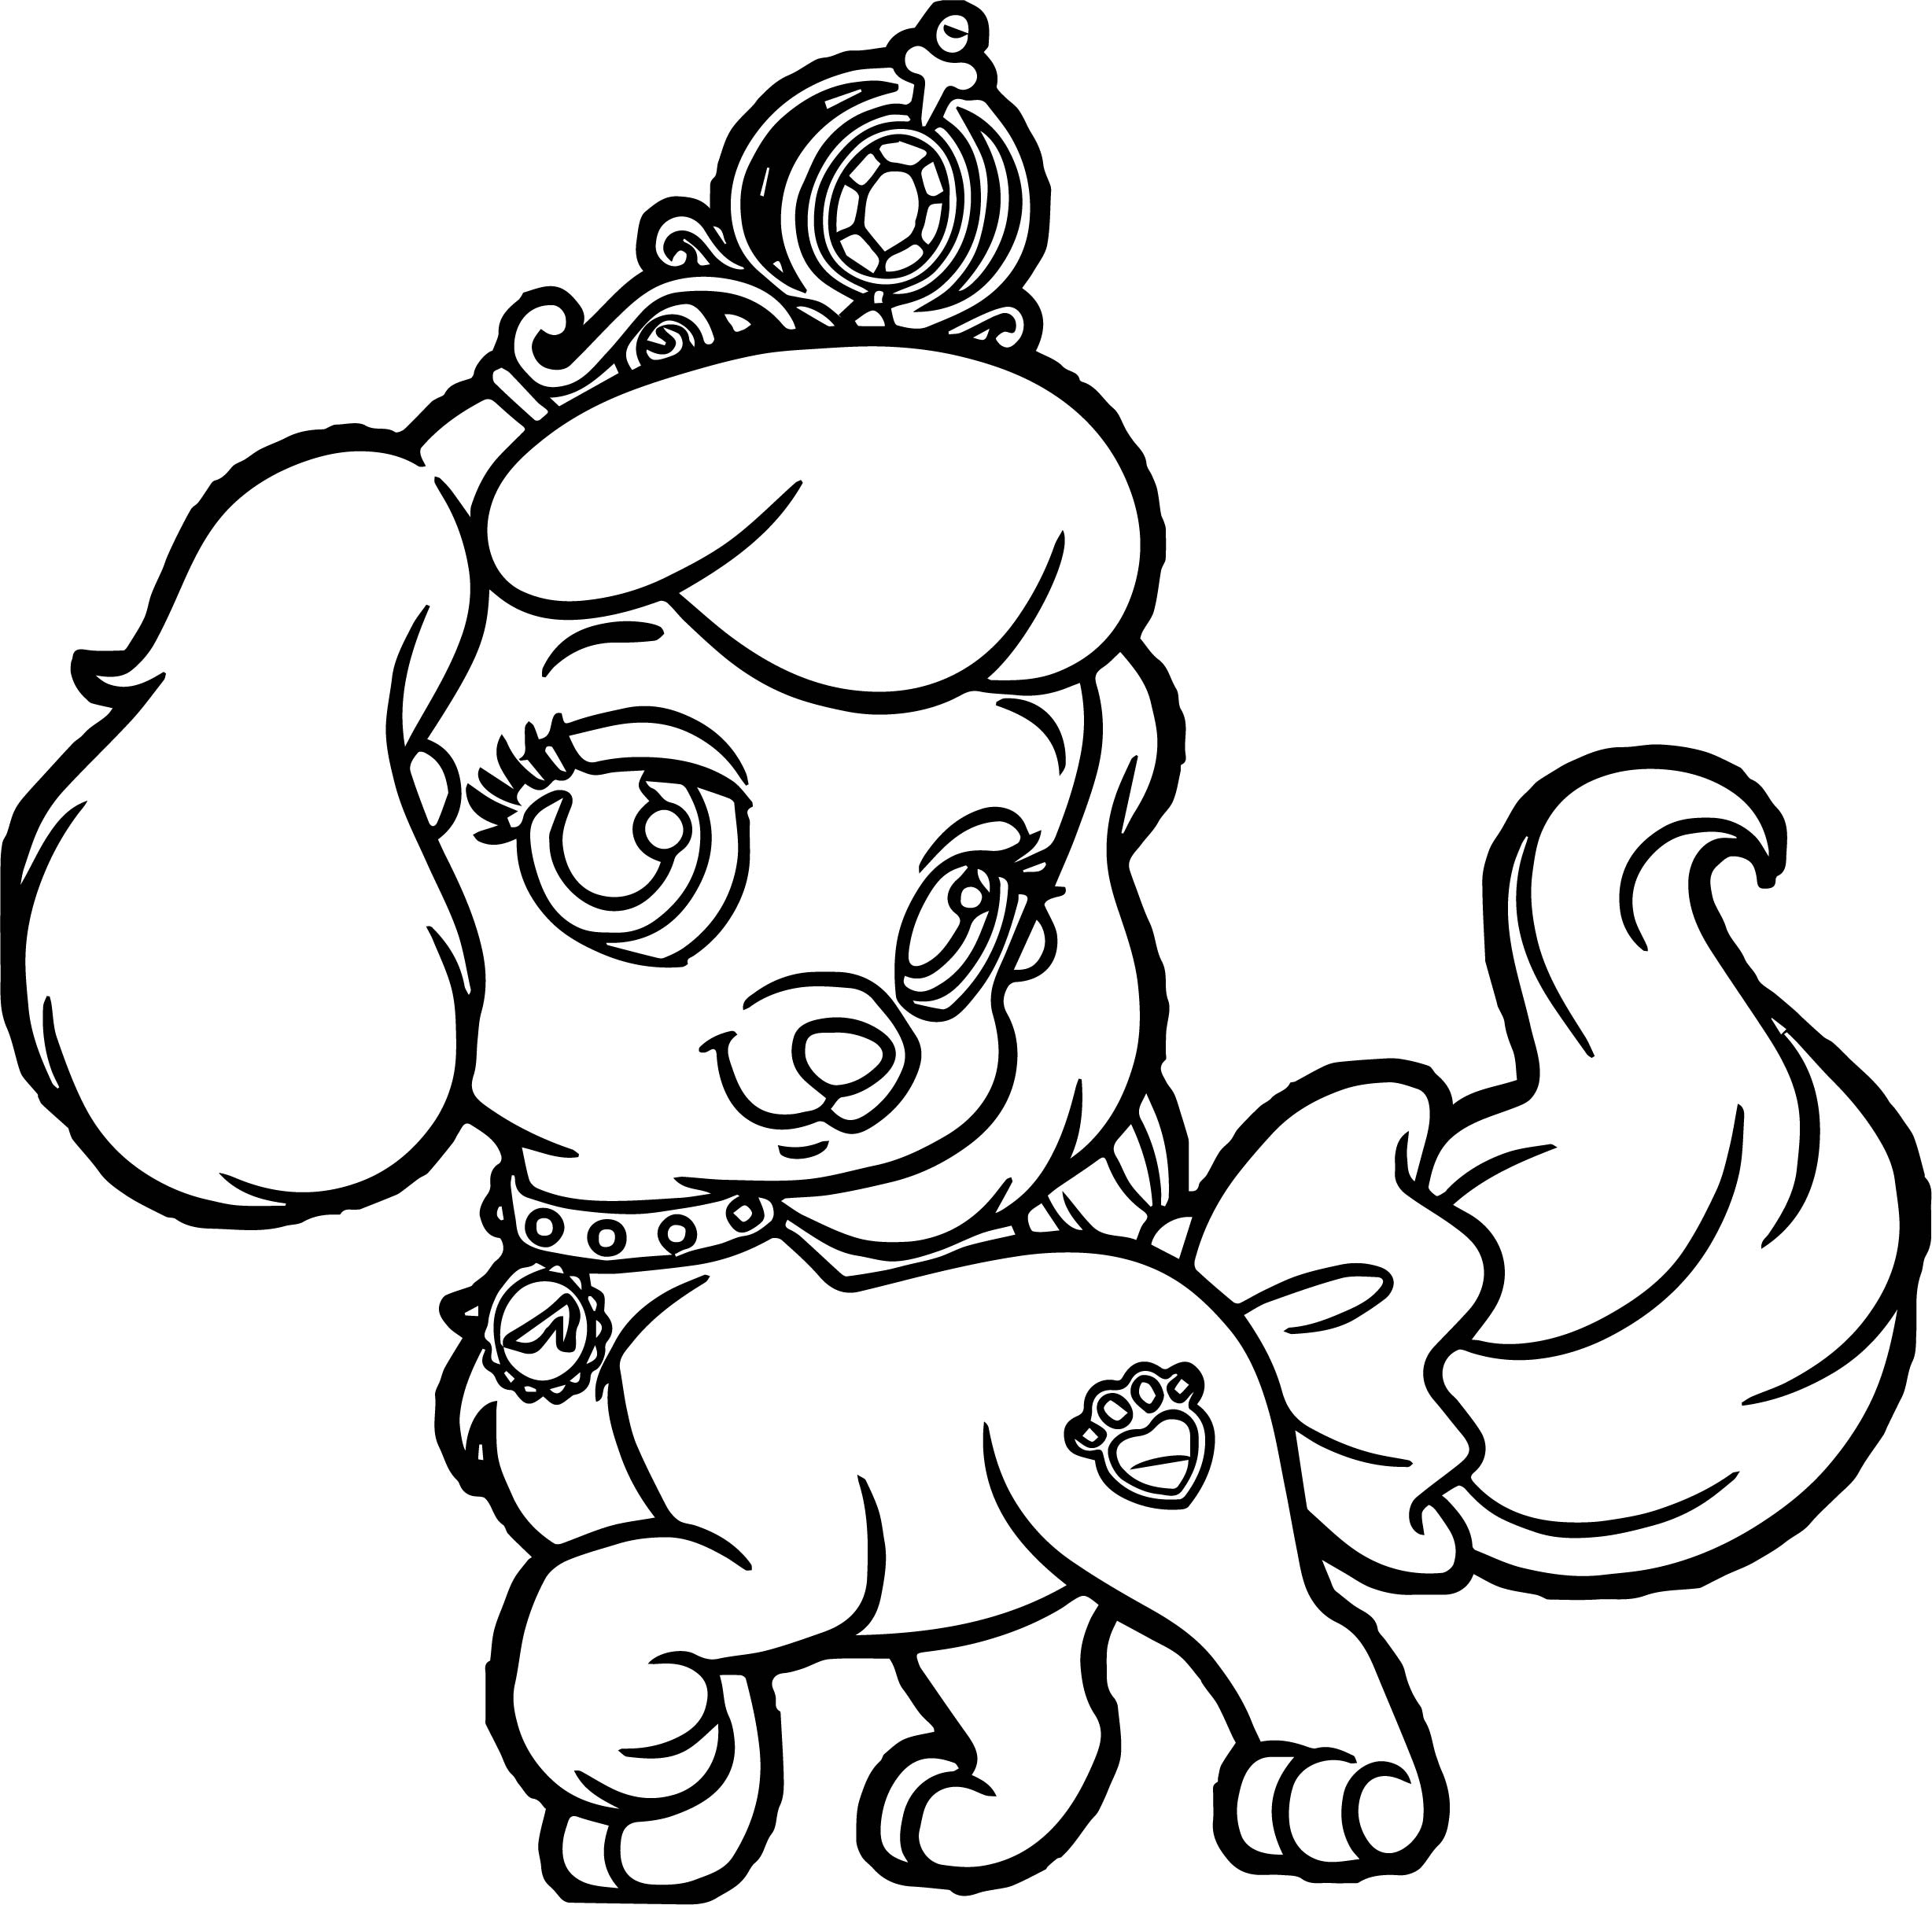 kawaii dog coloring pages puppy dogs cute coloring page free coloring pages online coloring dog kawaii pages